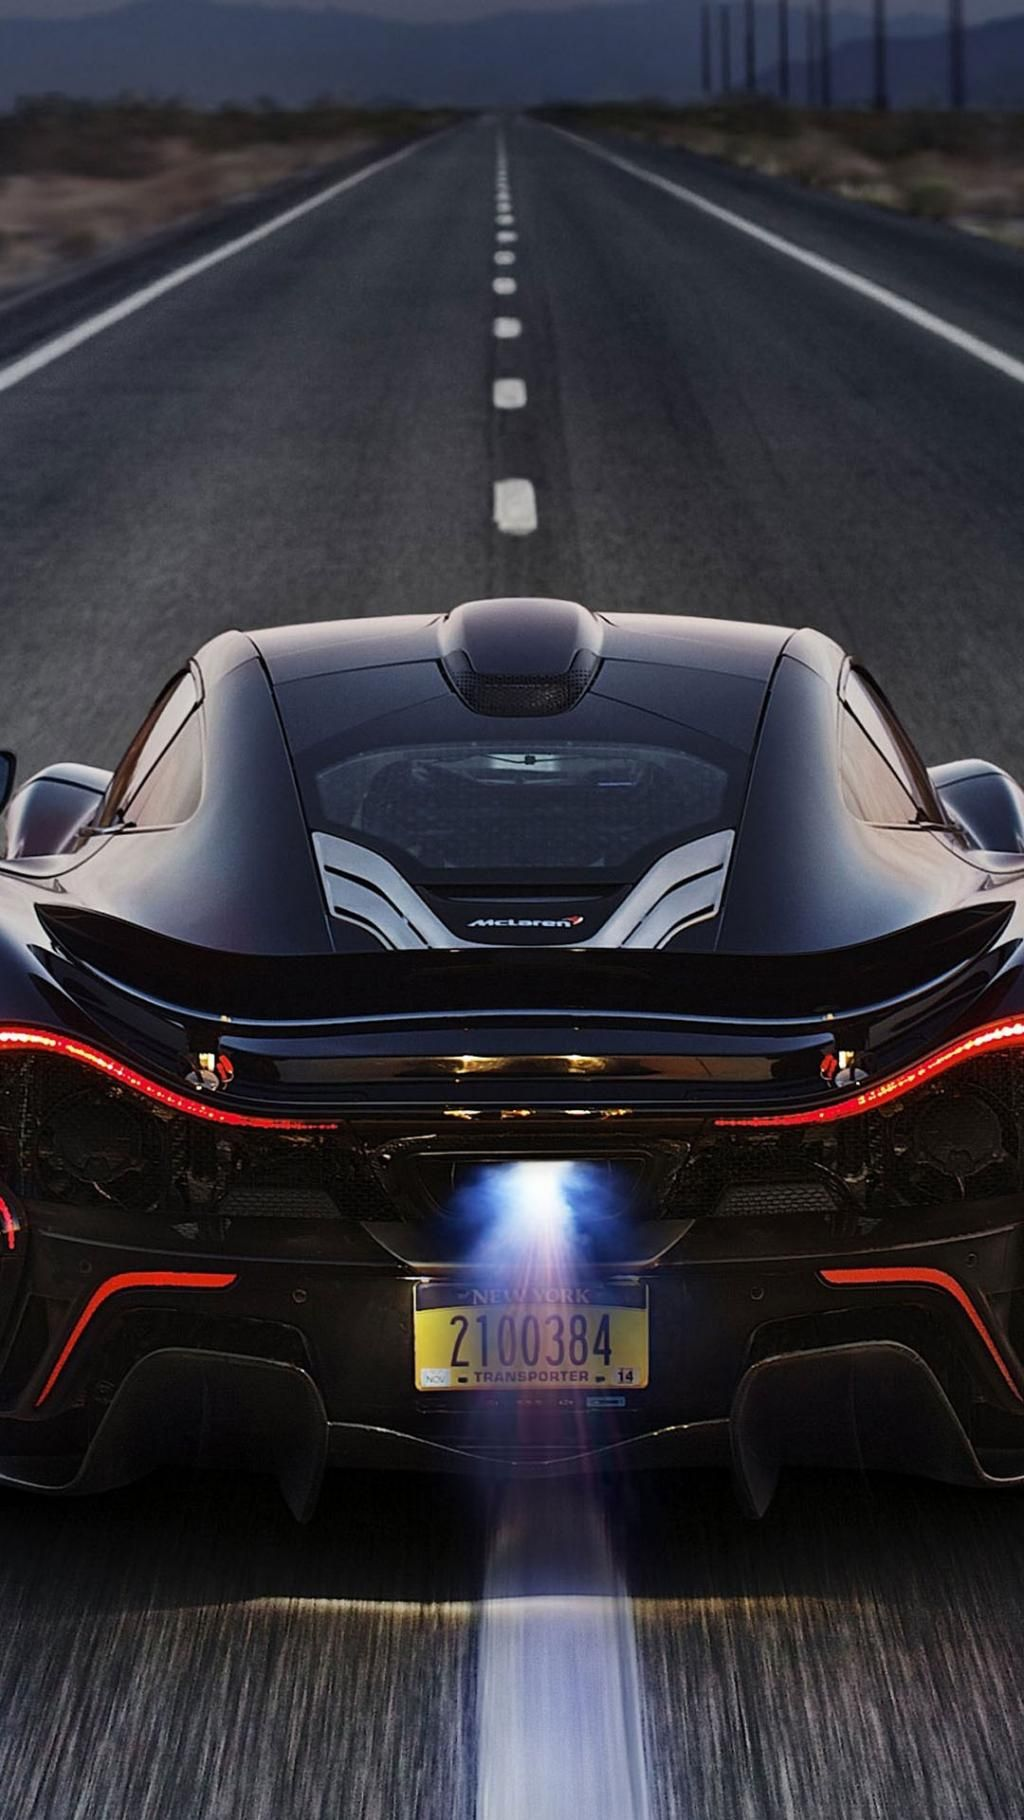 Live Car Wallpapers Iphone X Hd Images Free Mclaren P1 Sports Car Bmw Wallpapers